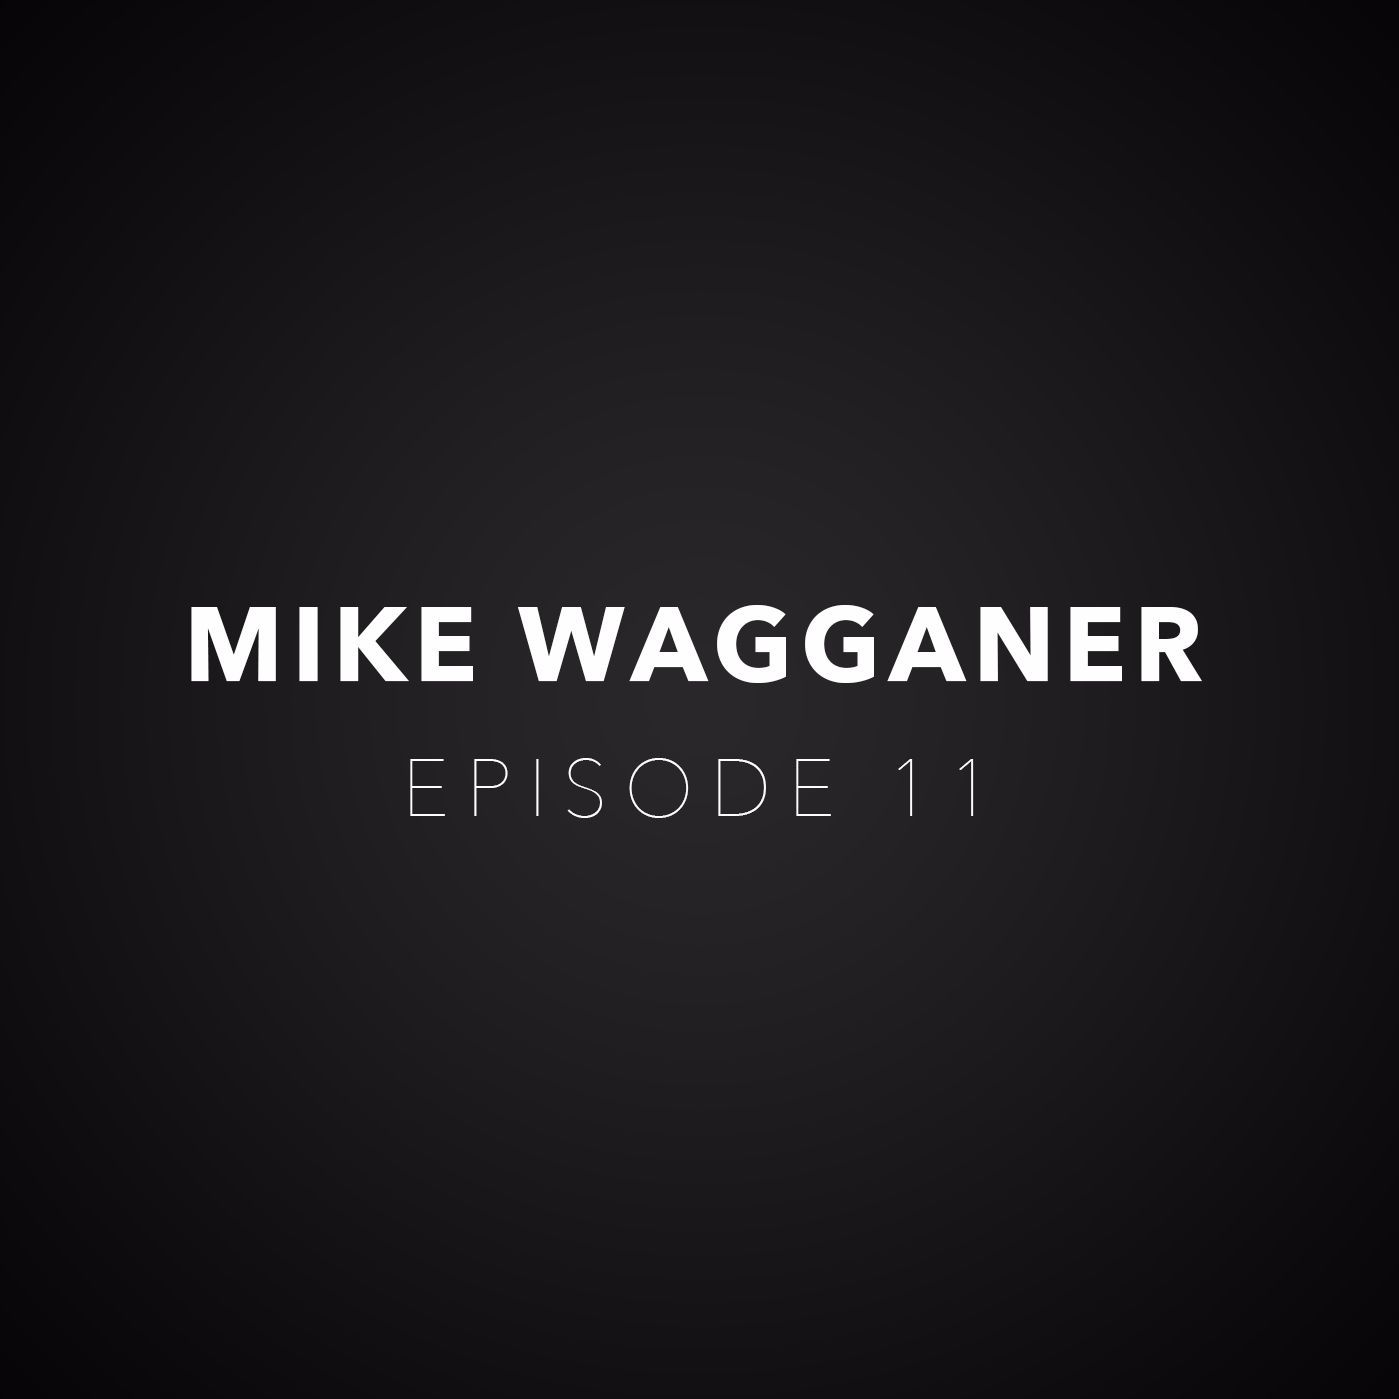 """Episode 11 - Mike Wagganer """"I Could Feel My Underwear"""""""